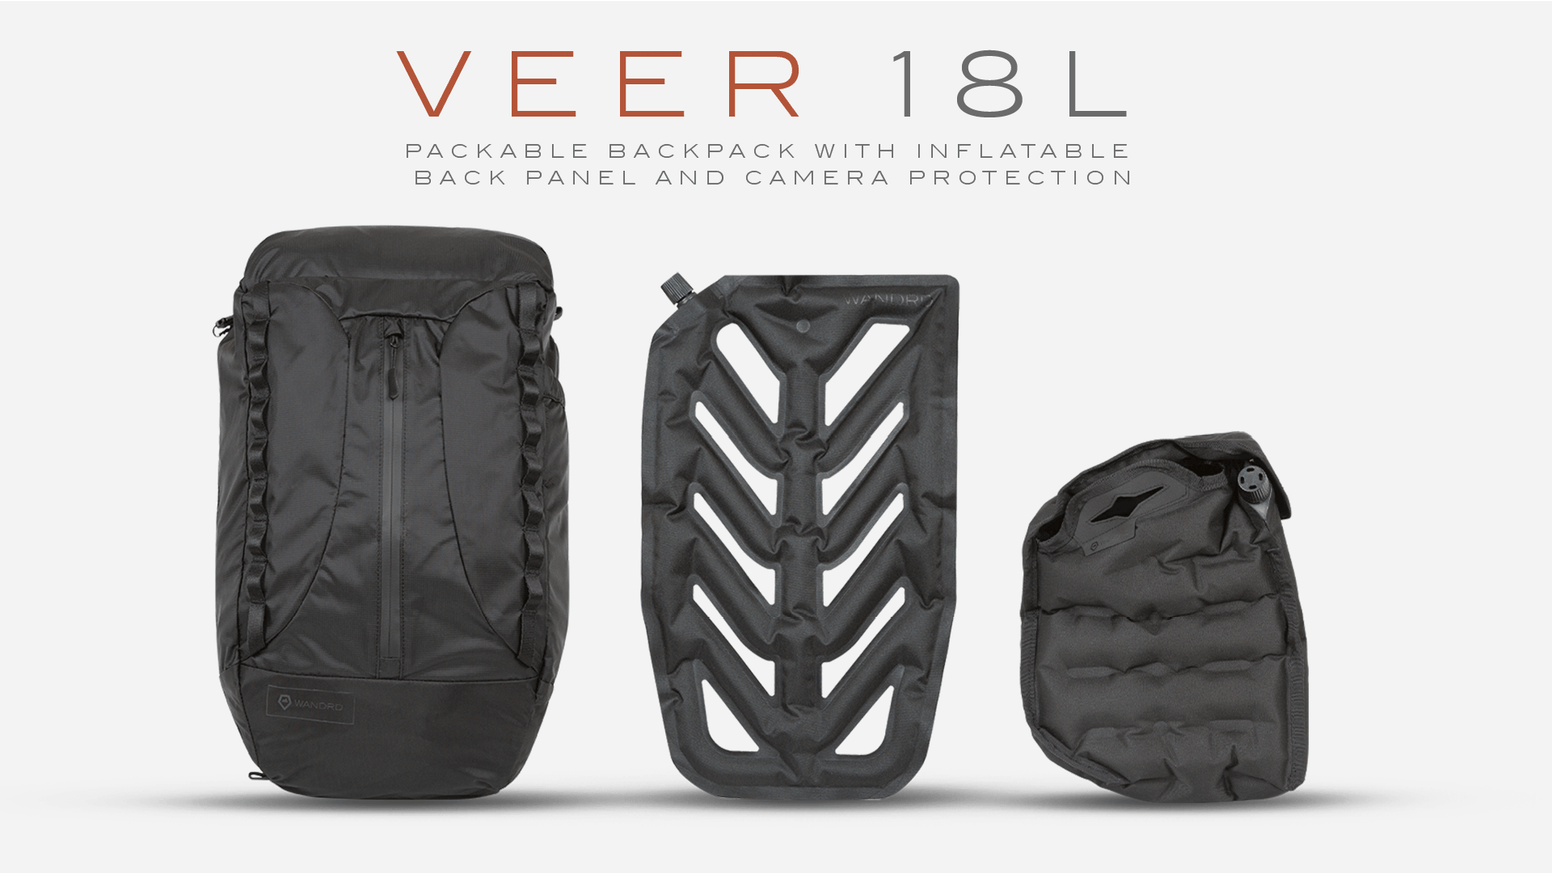 For photographers or travelers — The first packable backpack with inflatable back panel and inflatable camera protection.